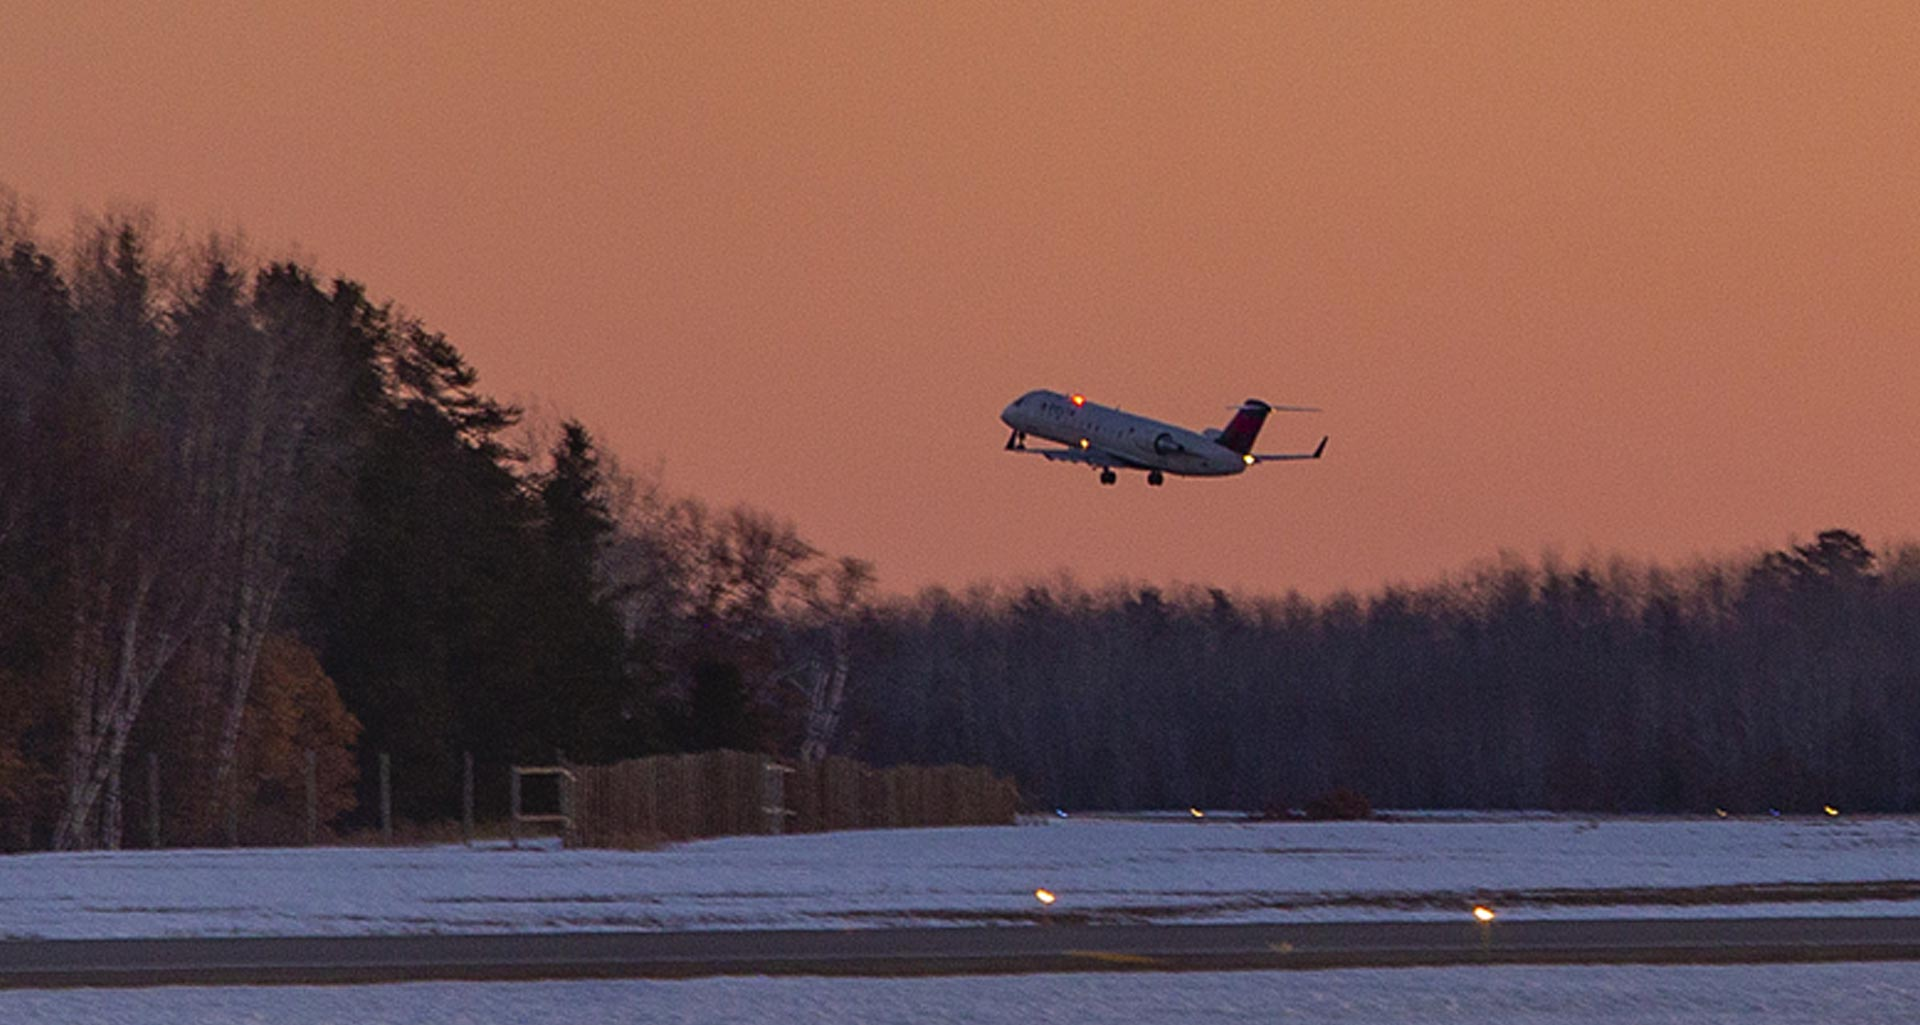 Delta jet taking off against a winter sky at dusk.